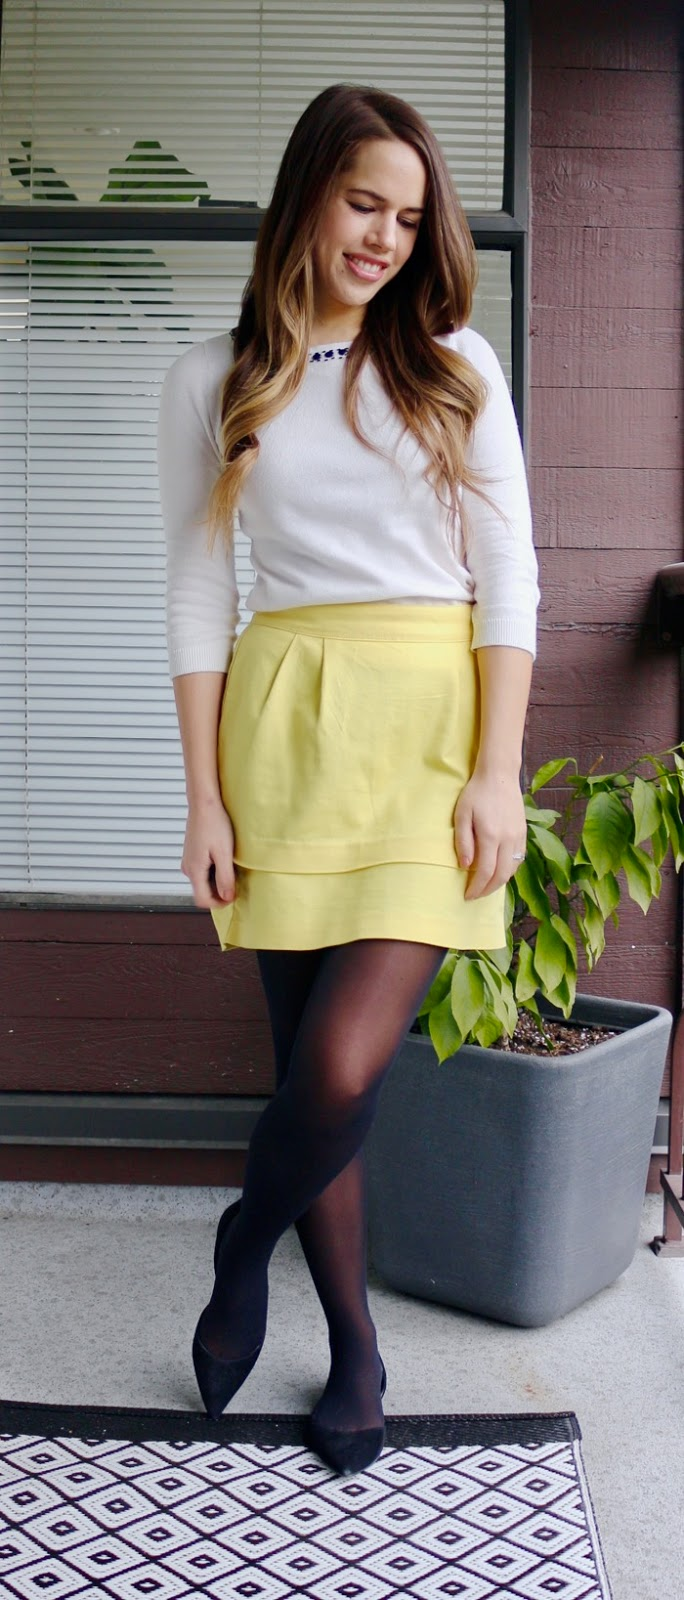 Jules in Flats - Sunny Yellow Skirt for Work